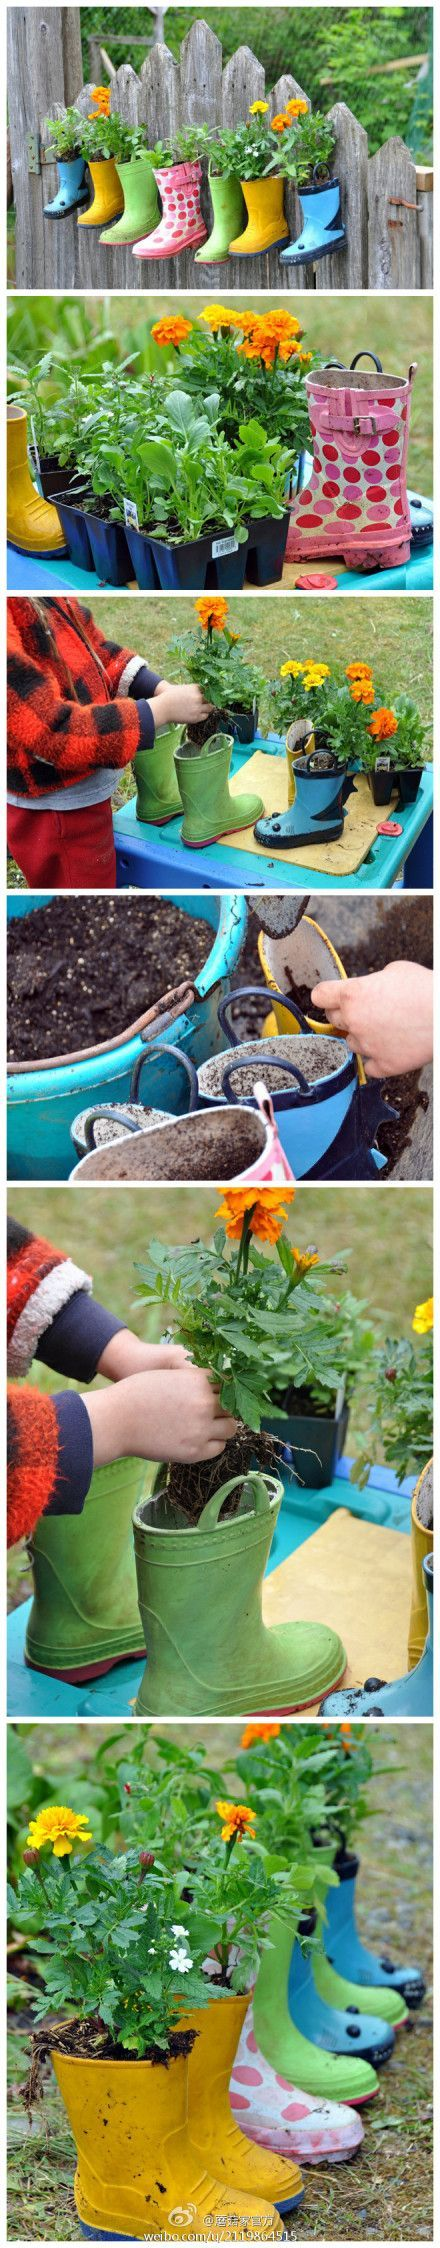 Creative idea for #gardening. Even gets the kids involved.